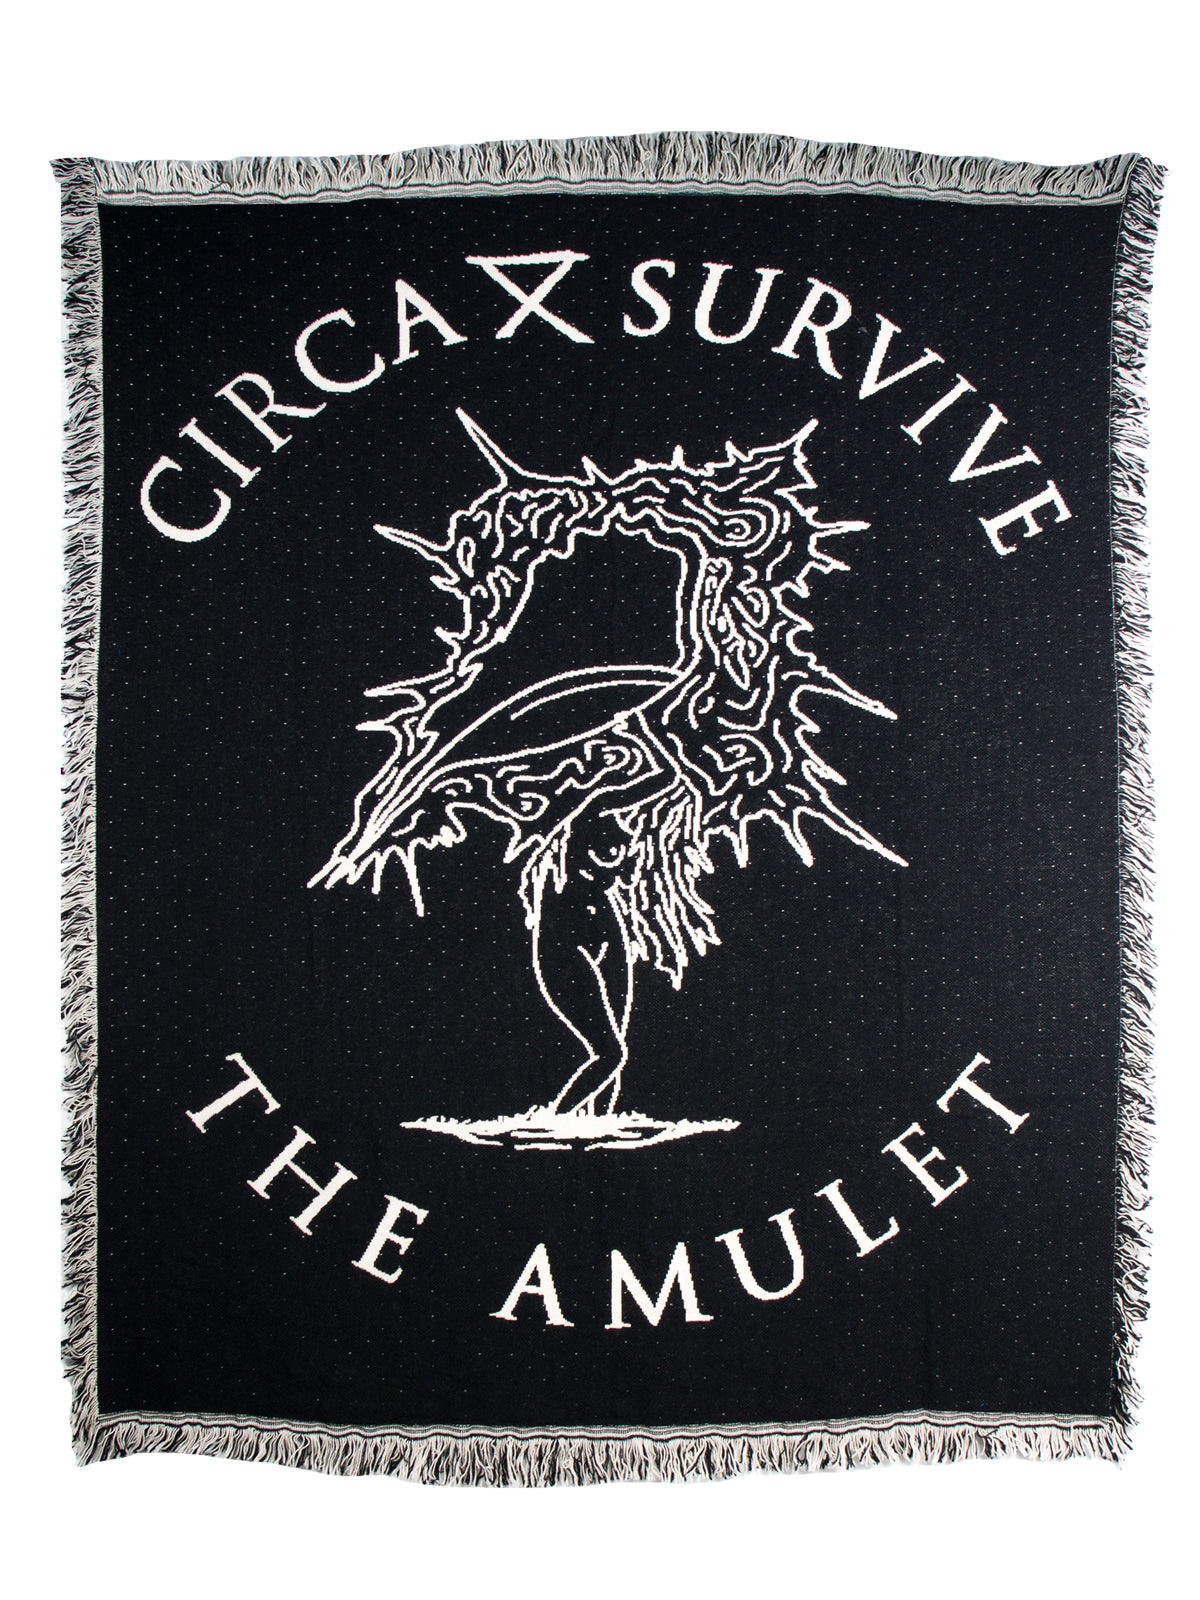 Circa Survive - The Amulet Woven Blanket - Merch Limited